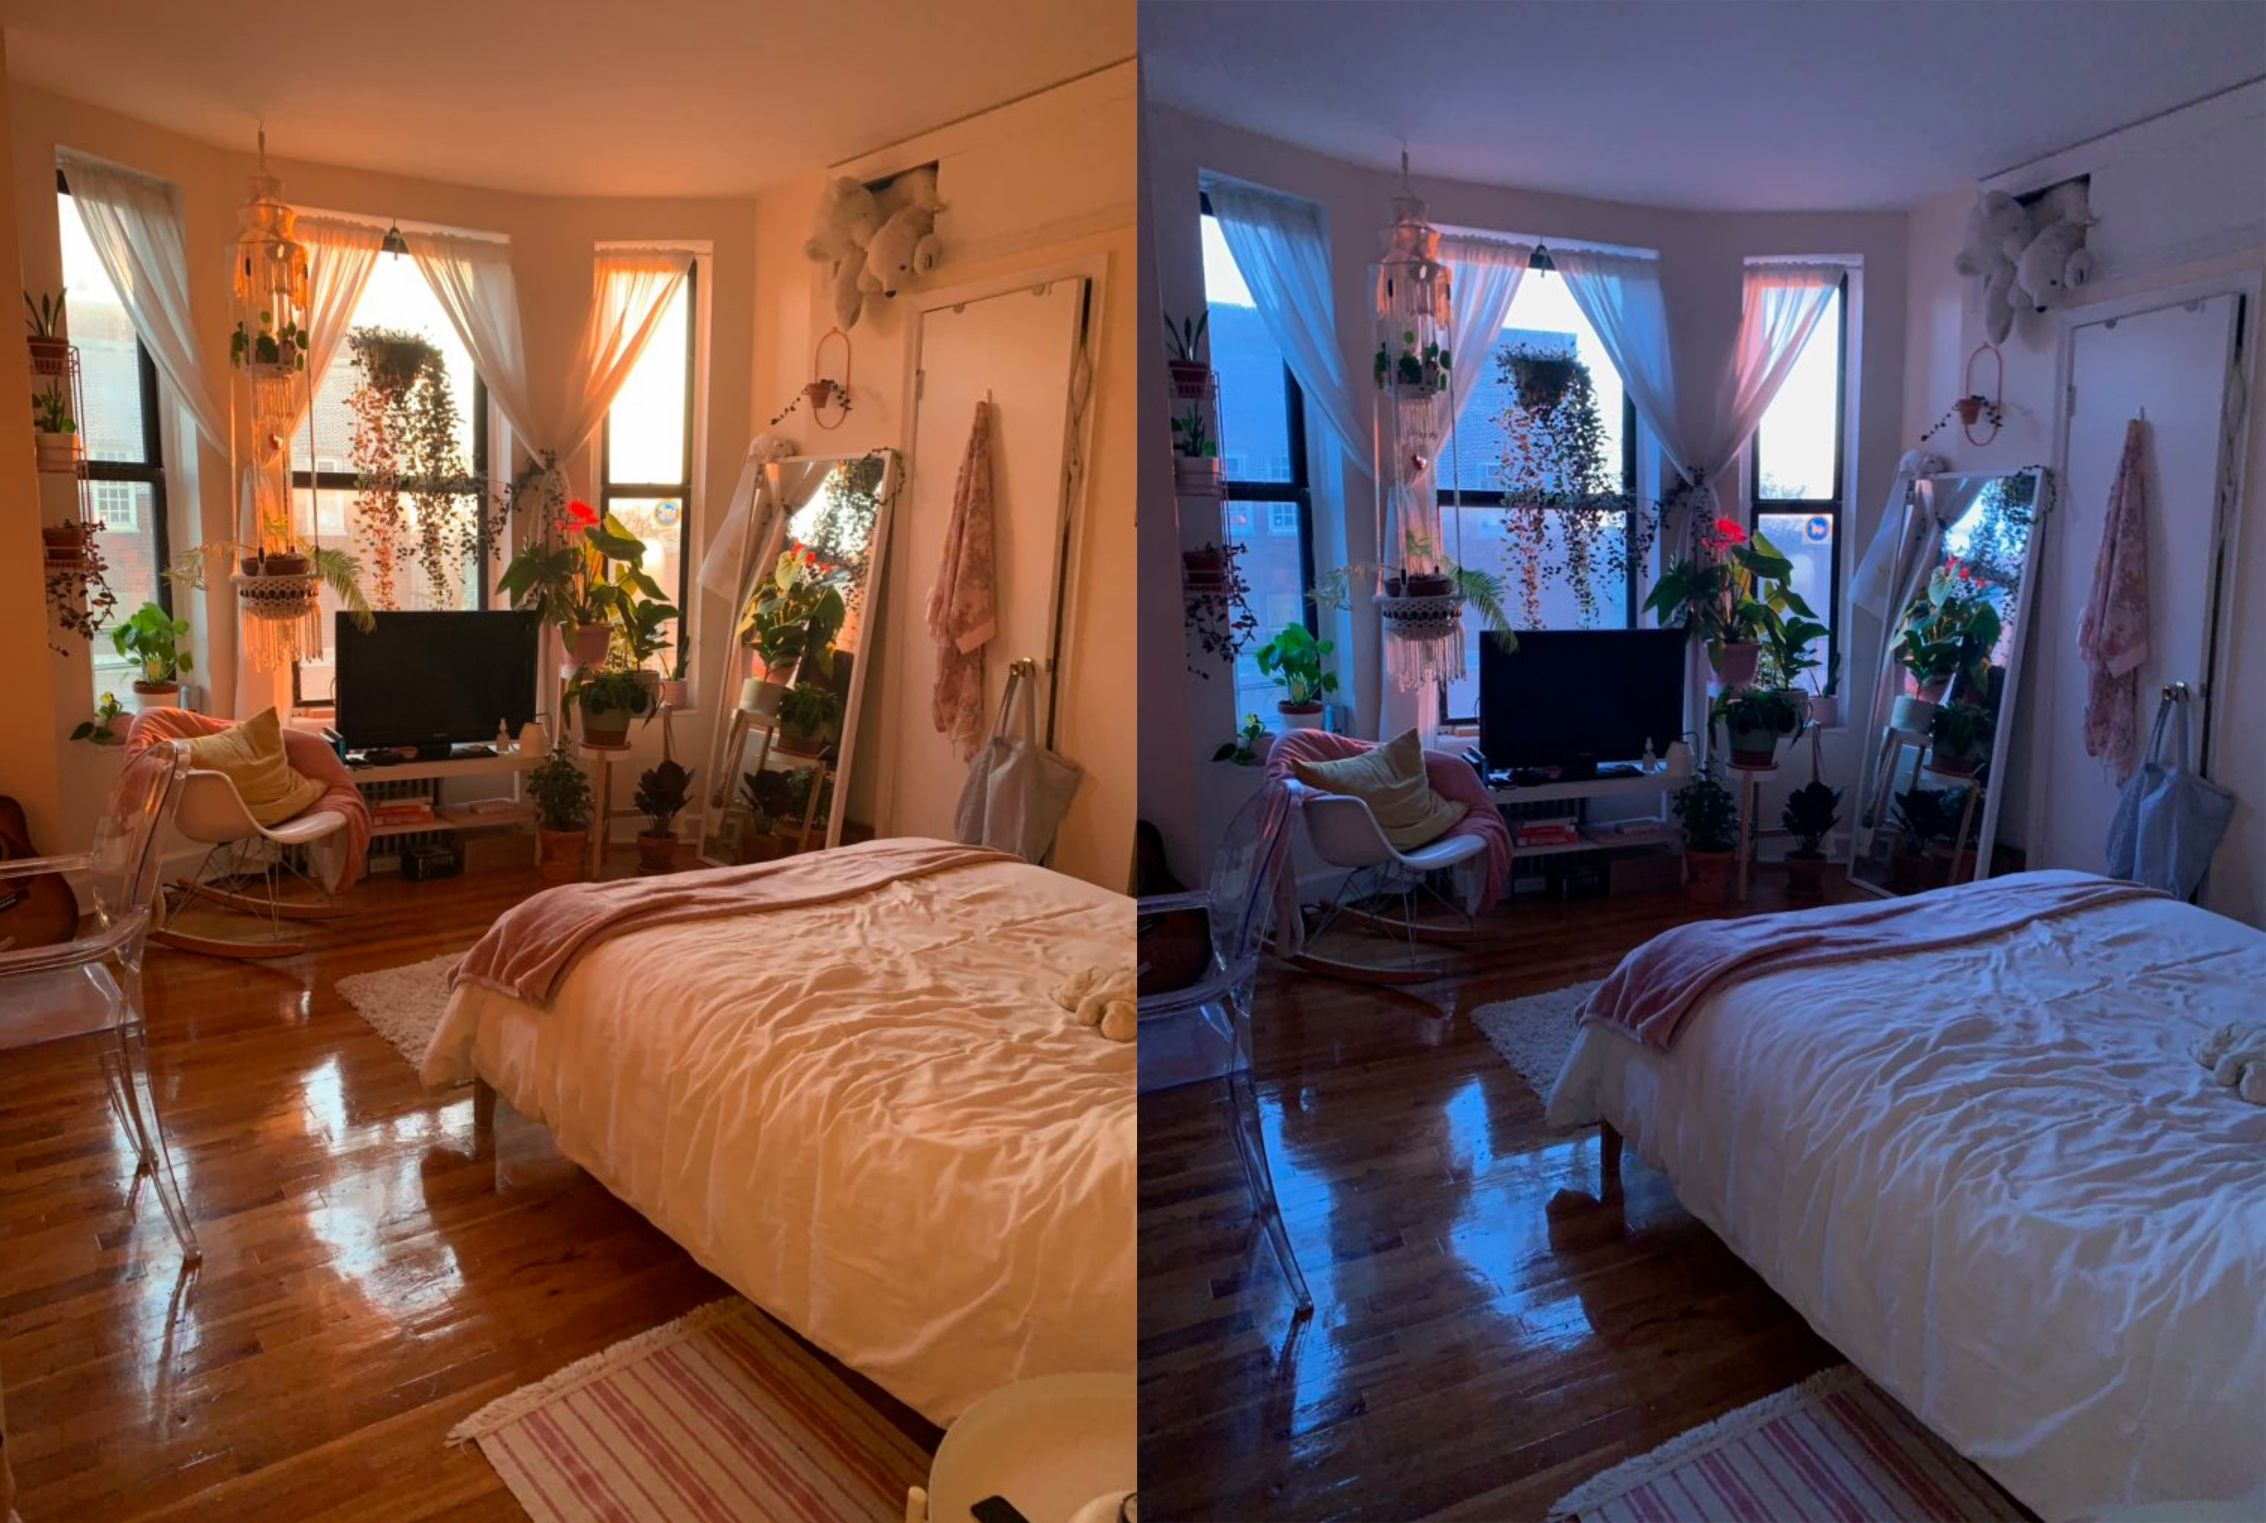 Sunset and Sunrise (With images) | Cozy small bedrooms ...